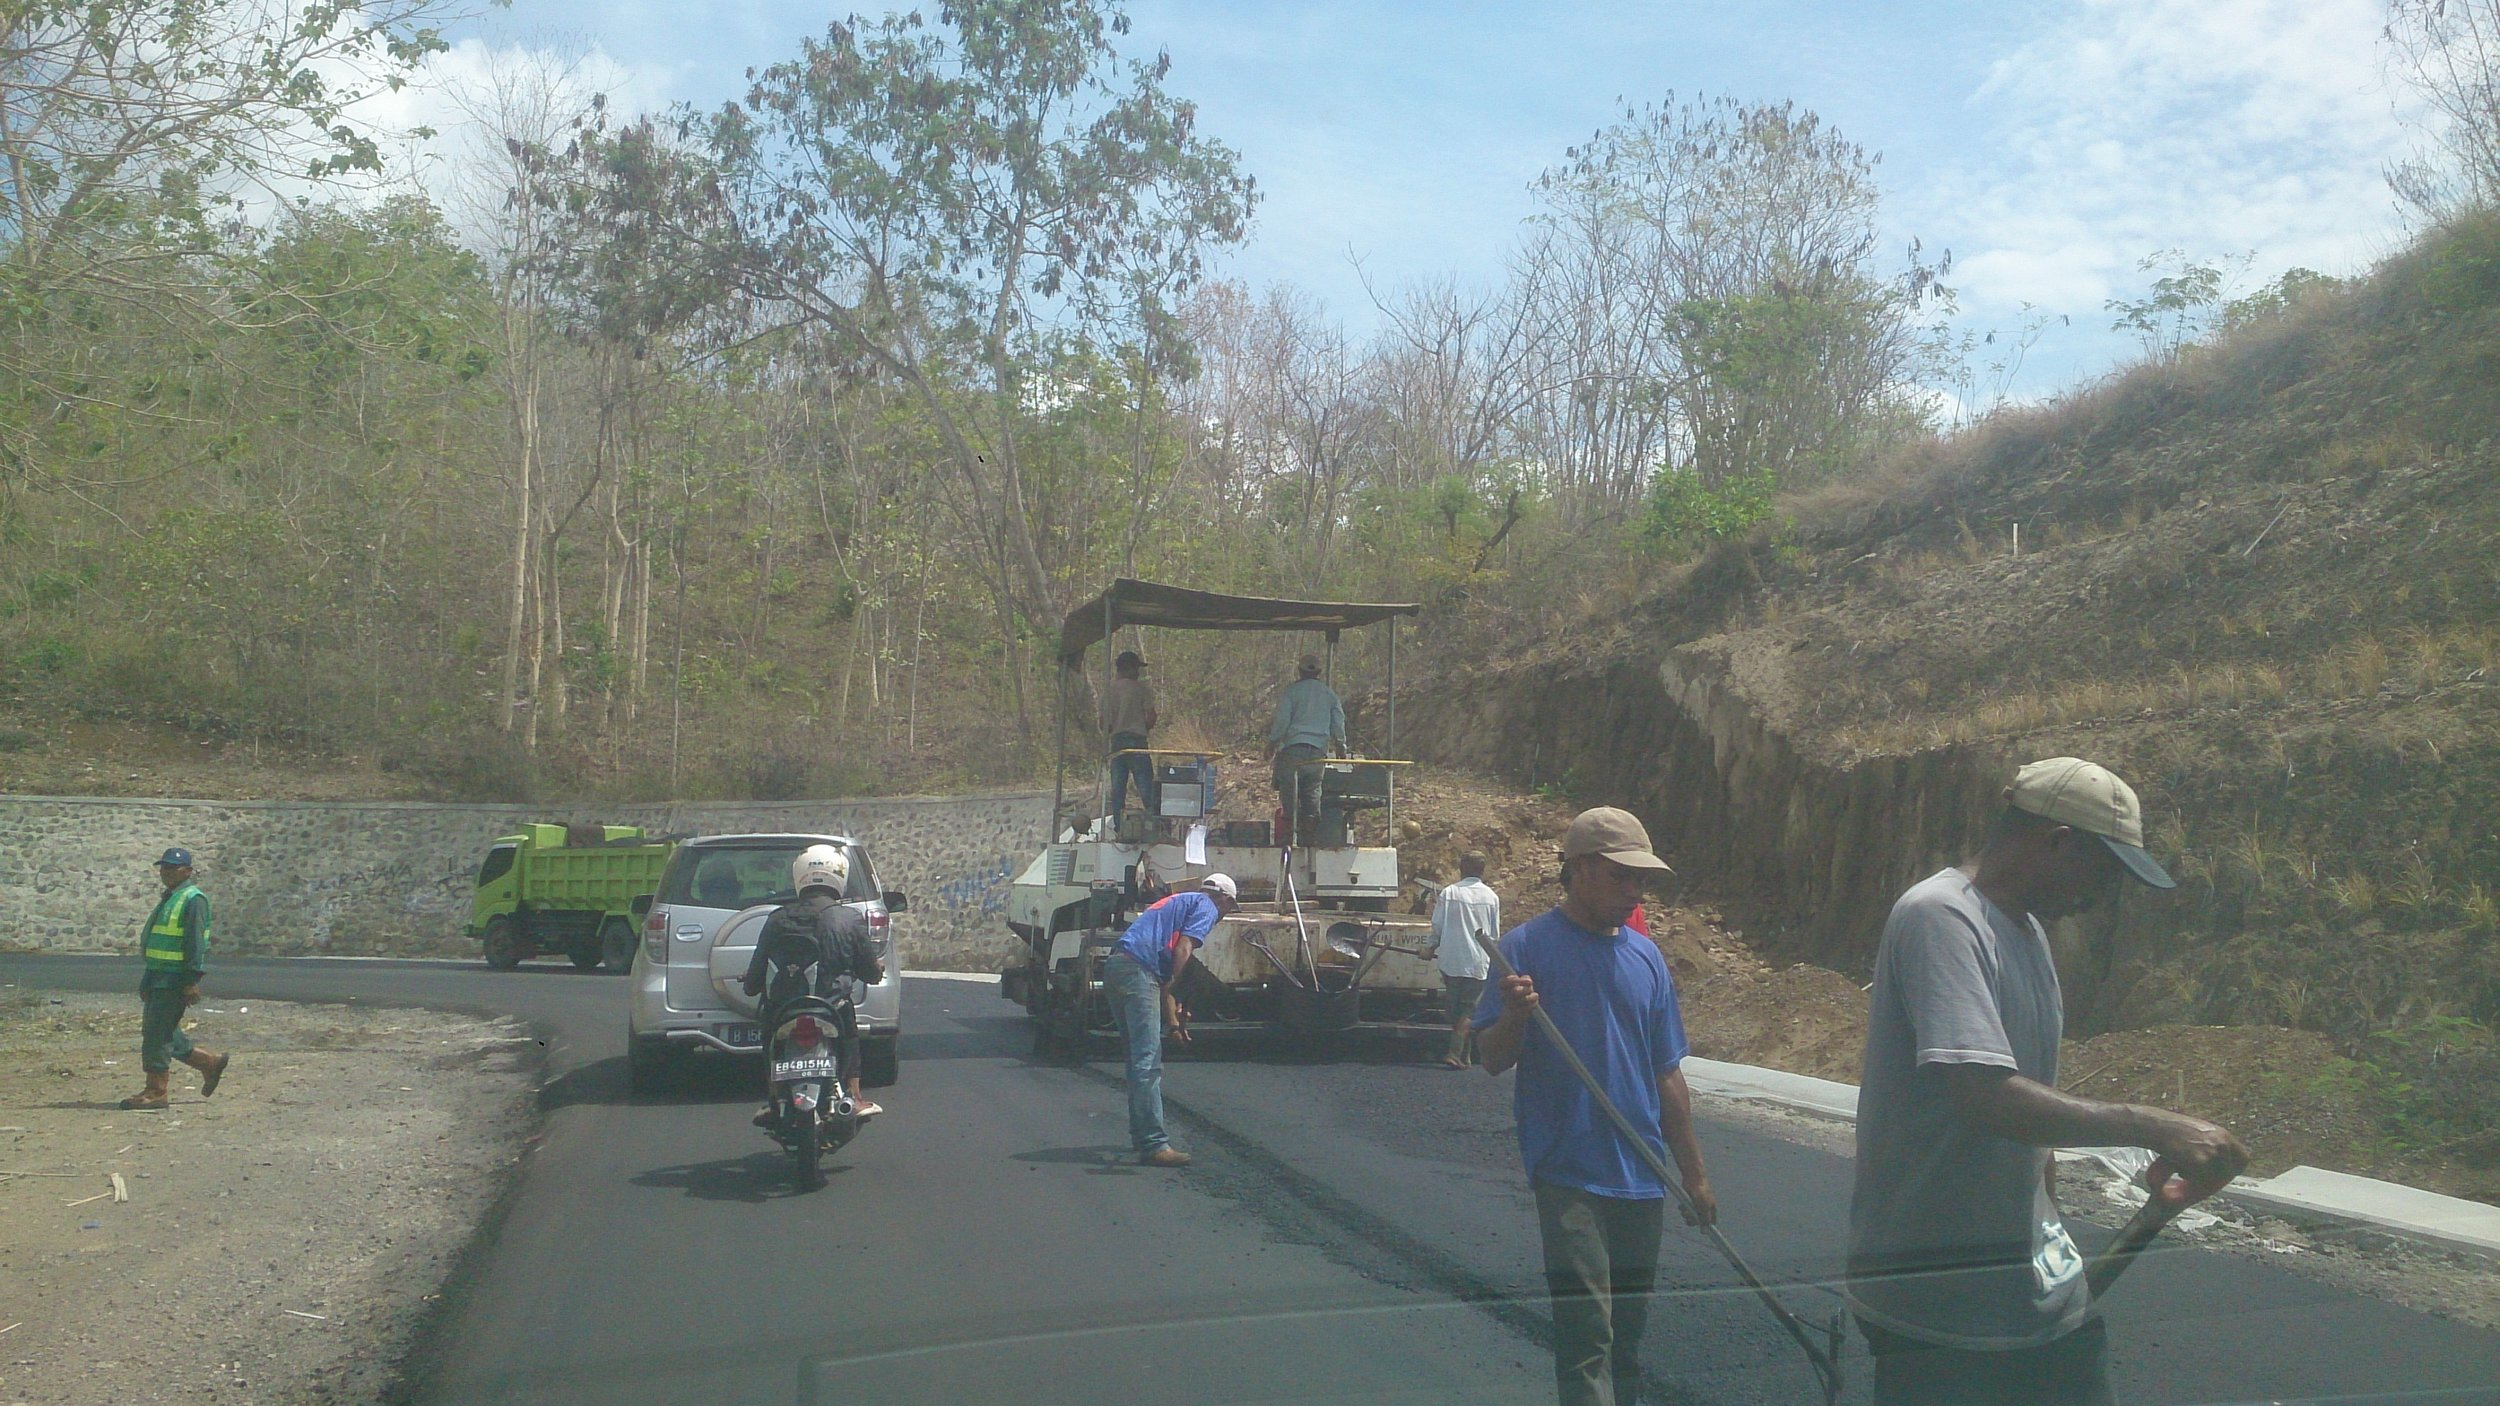 Road works on Flores